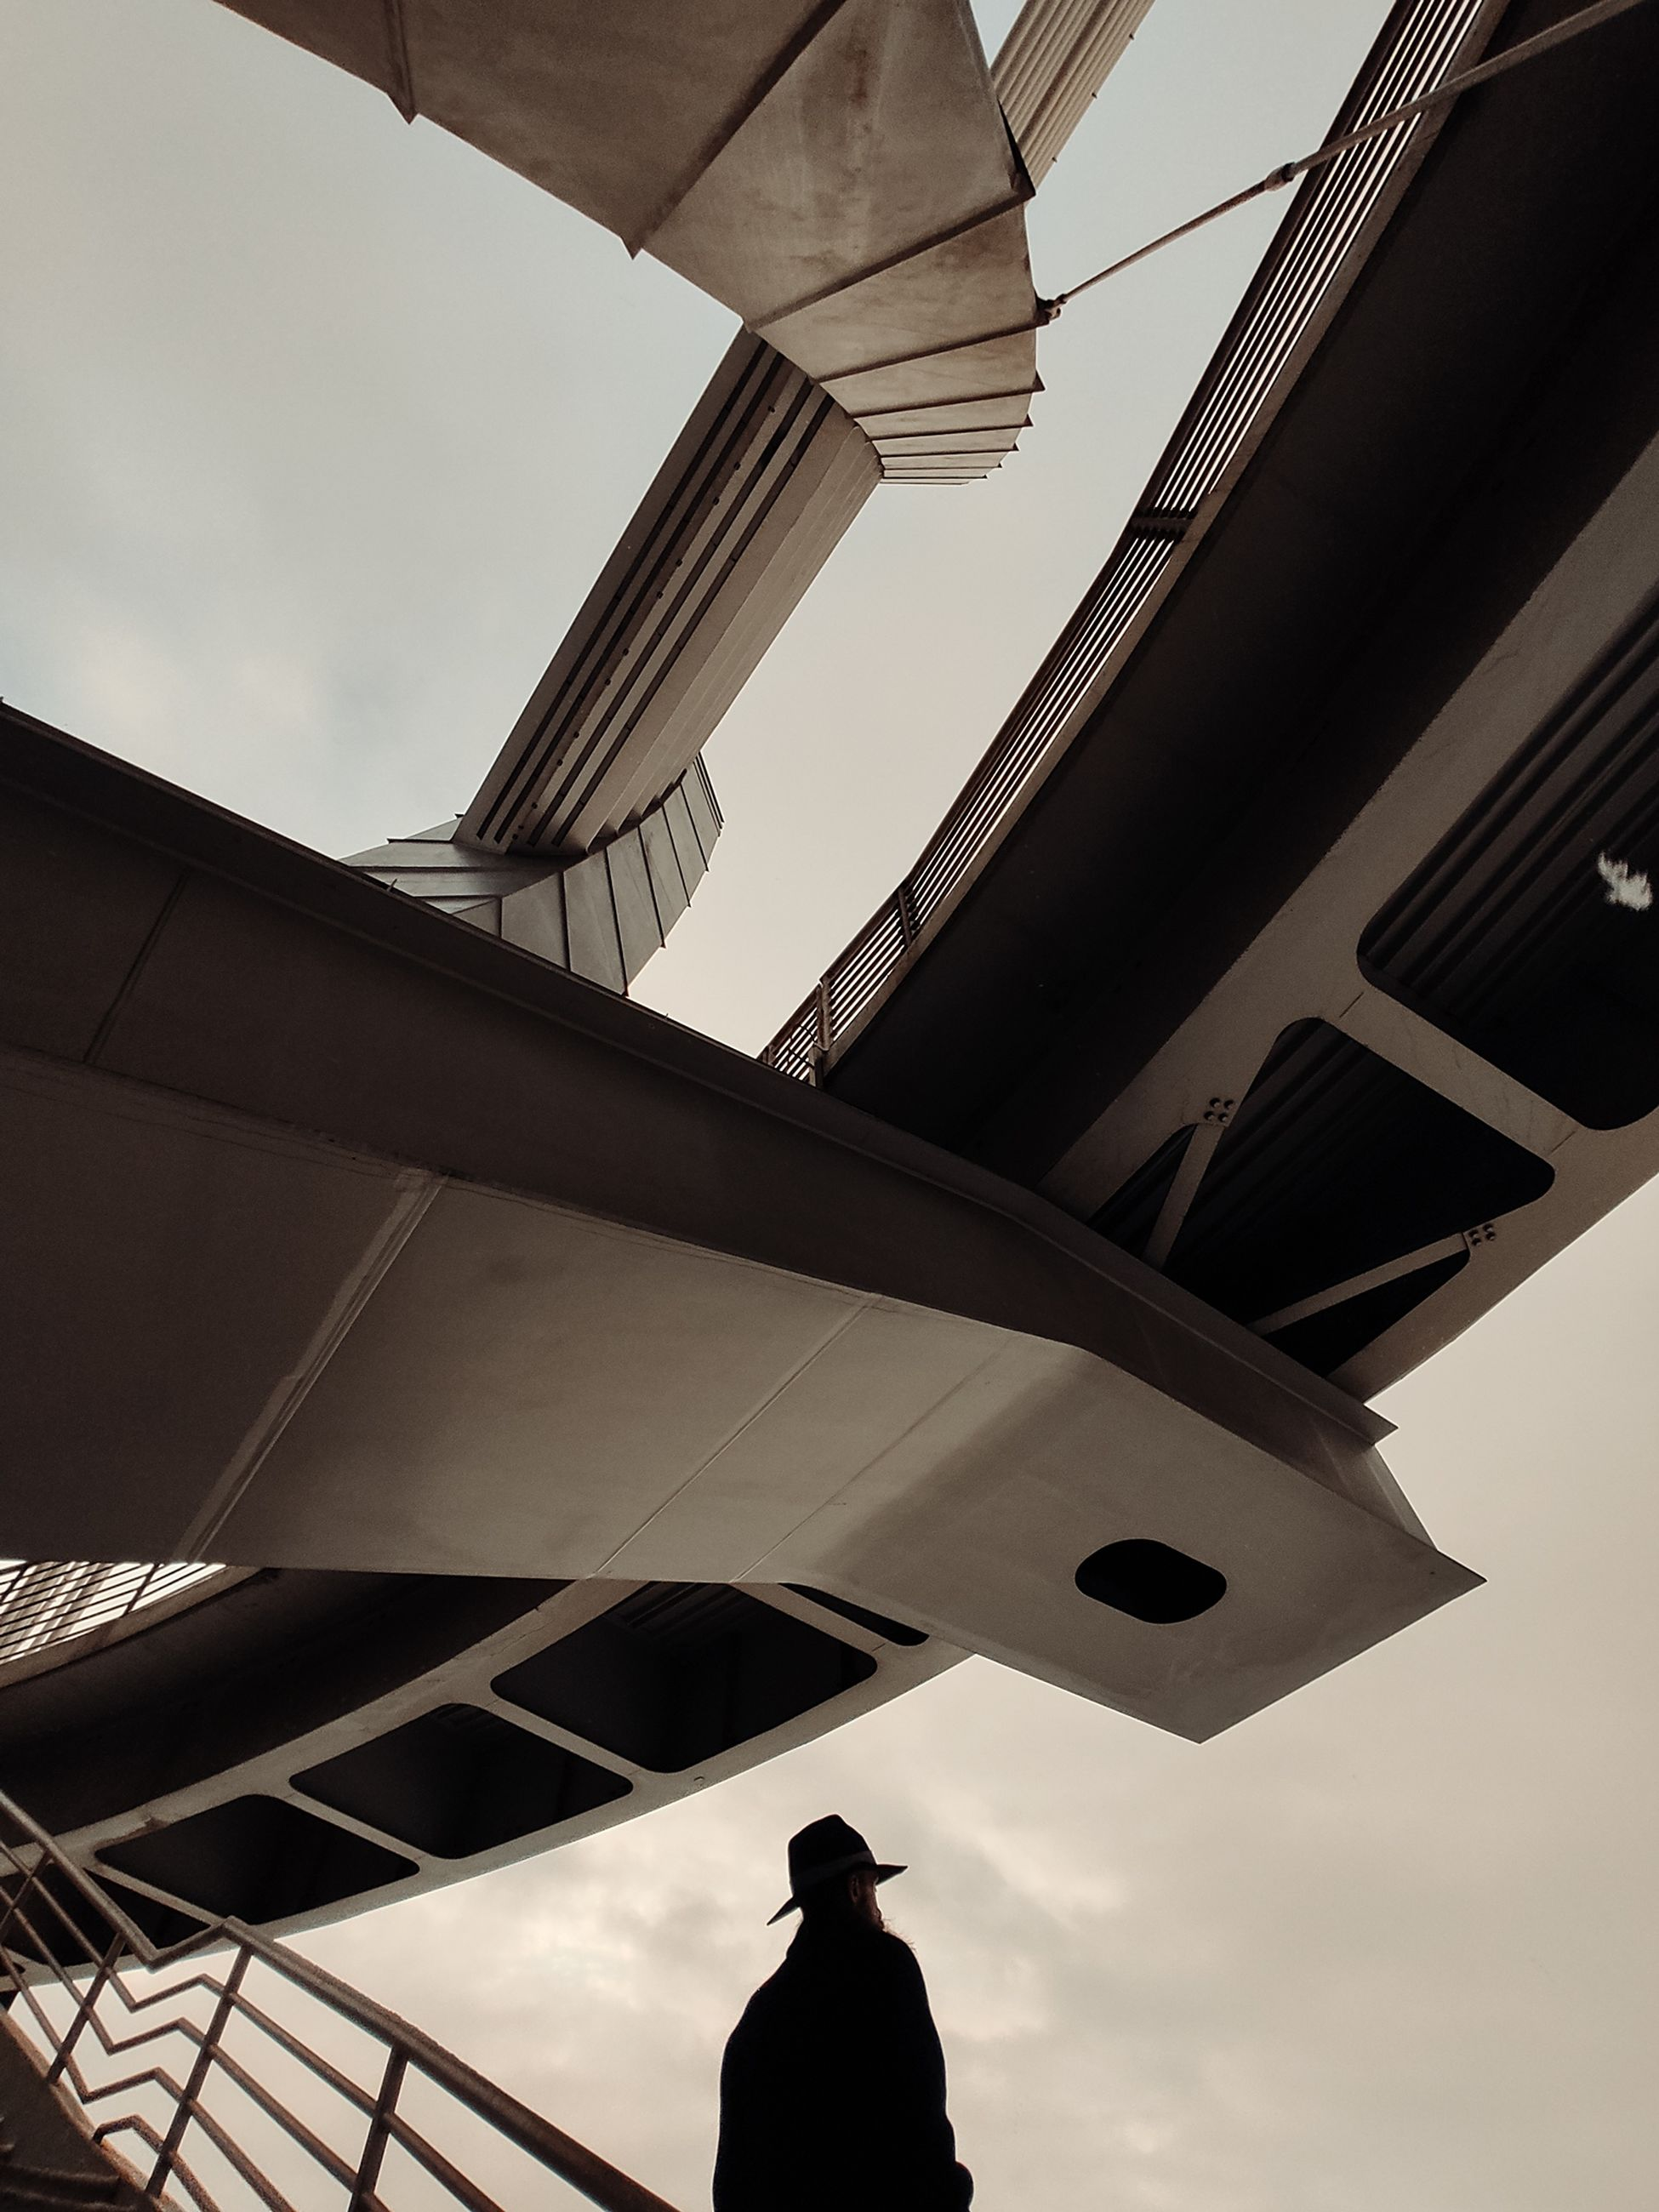 architecture, built structure, black, low angle view, silhouette, sky, clothing, adult, transportation, one person, city, person, men, white, light, travel, business, nature, building exterior, outdoors, standing, airplane